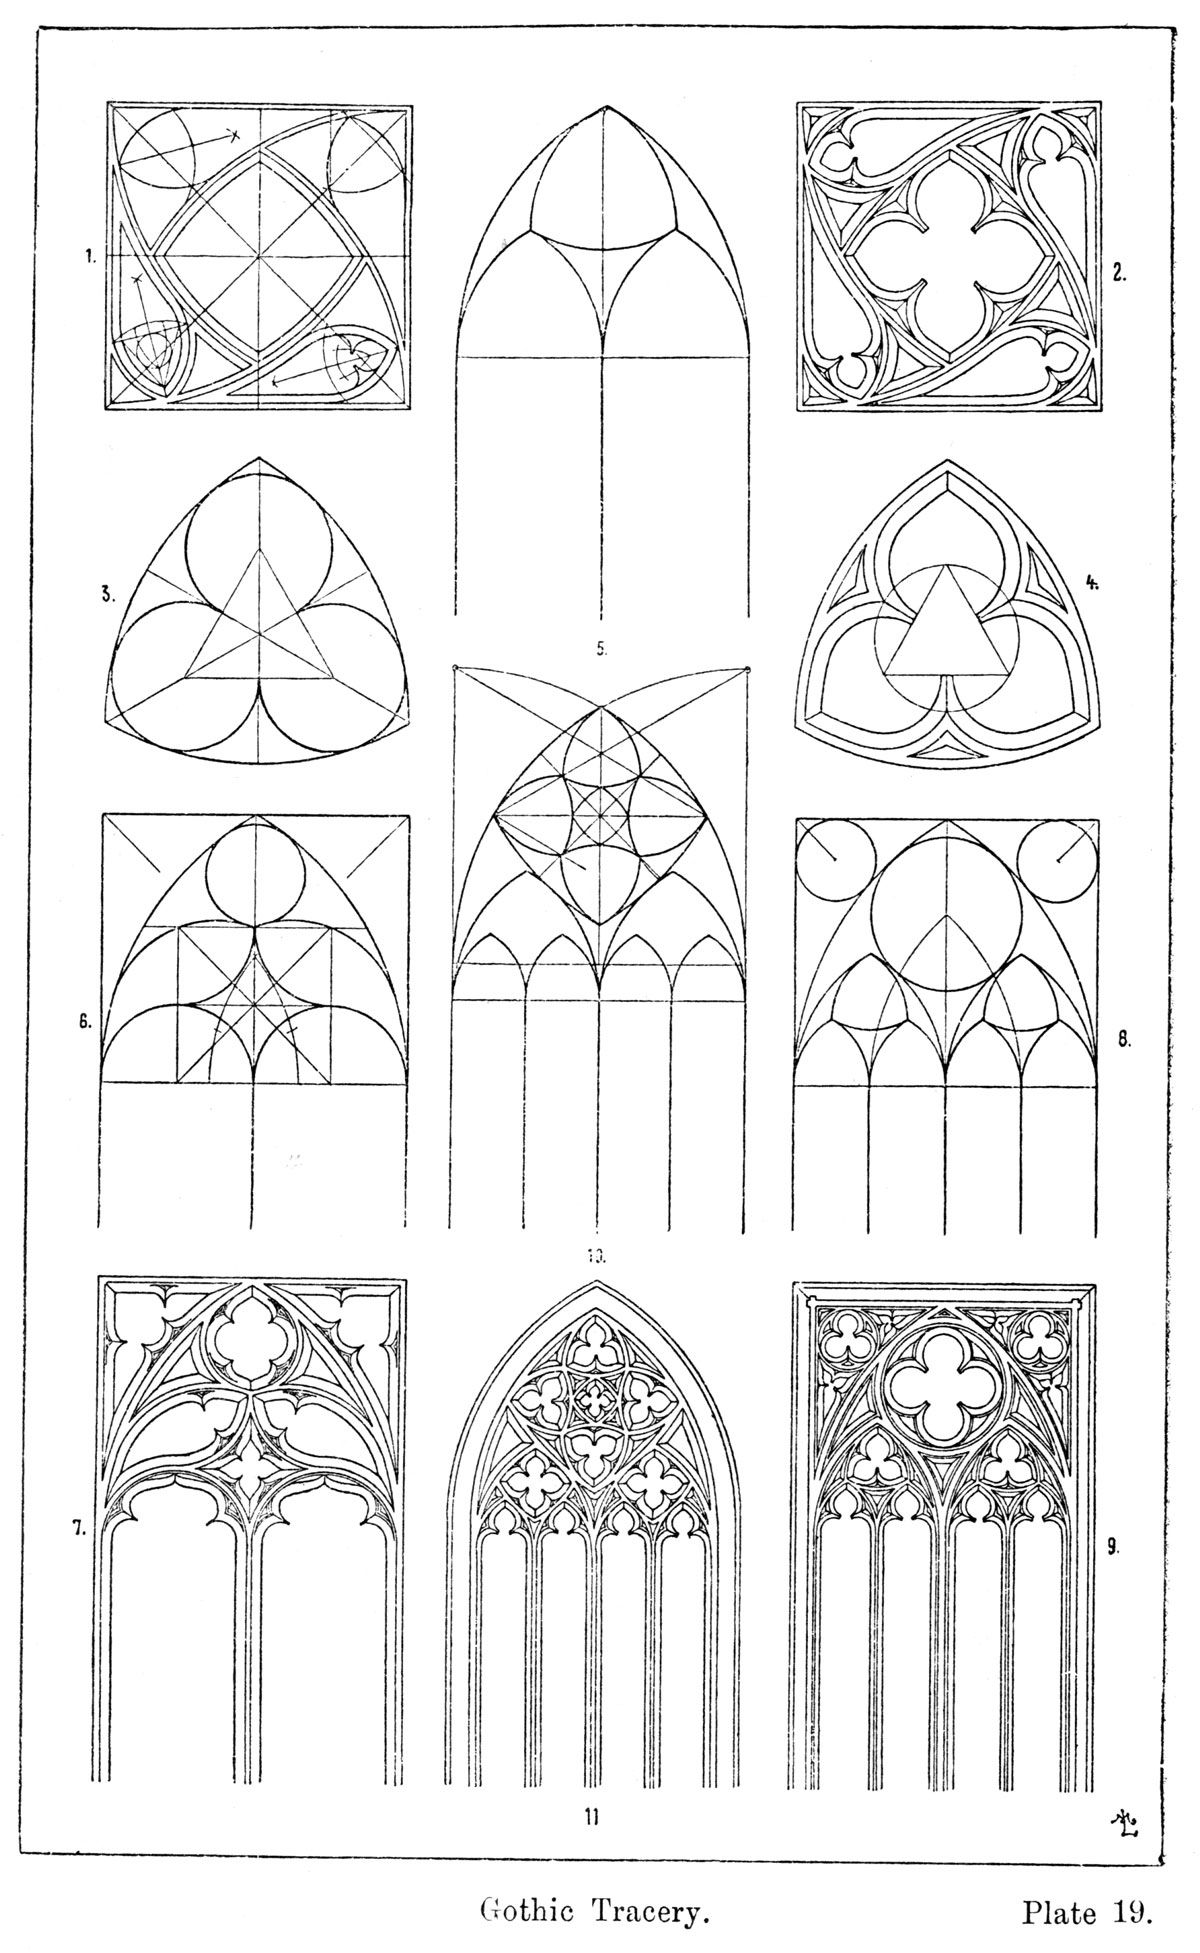 More Than Anything This Project Has Been About Exploring Gothic Geometry